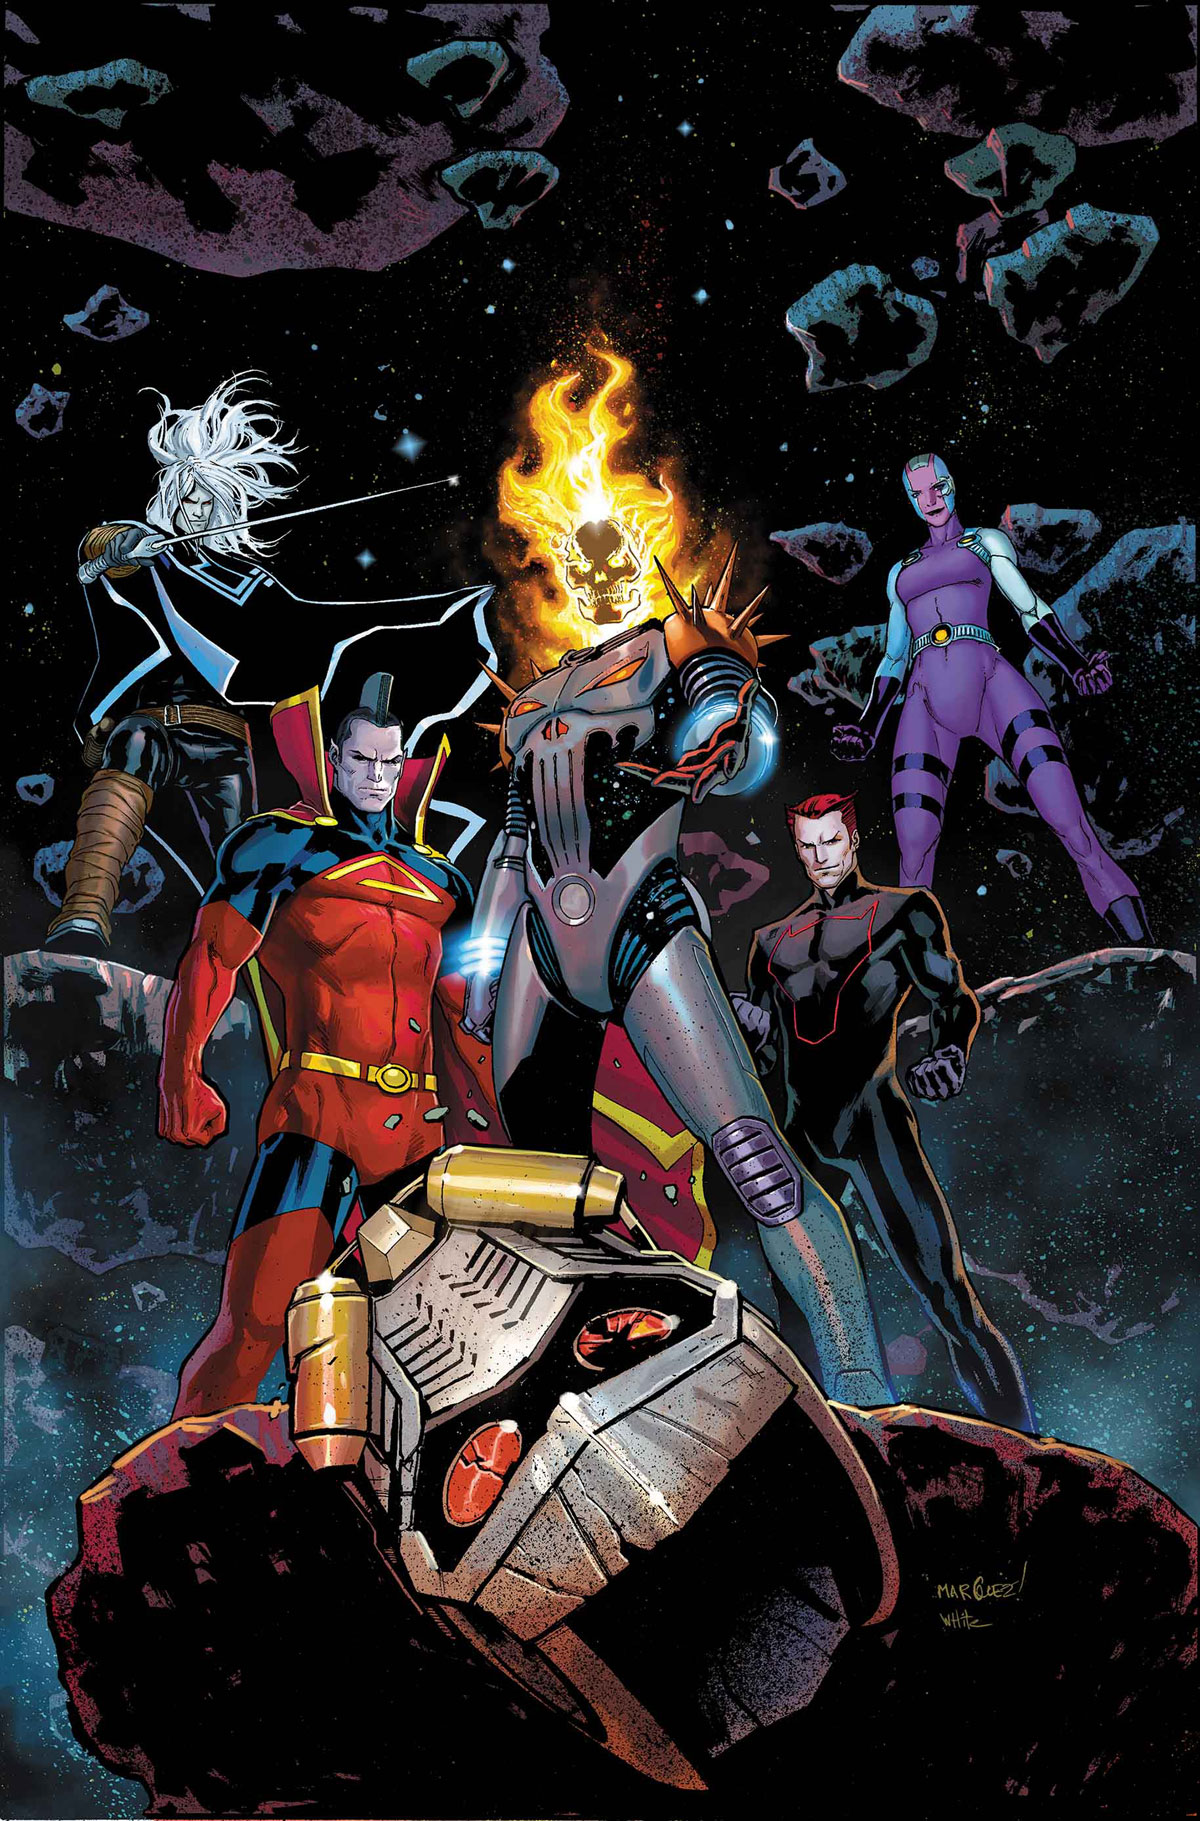 Guardians of the Galaxy #3 review: The three factions